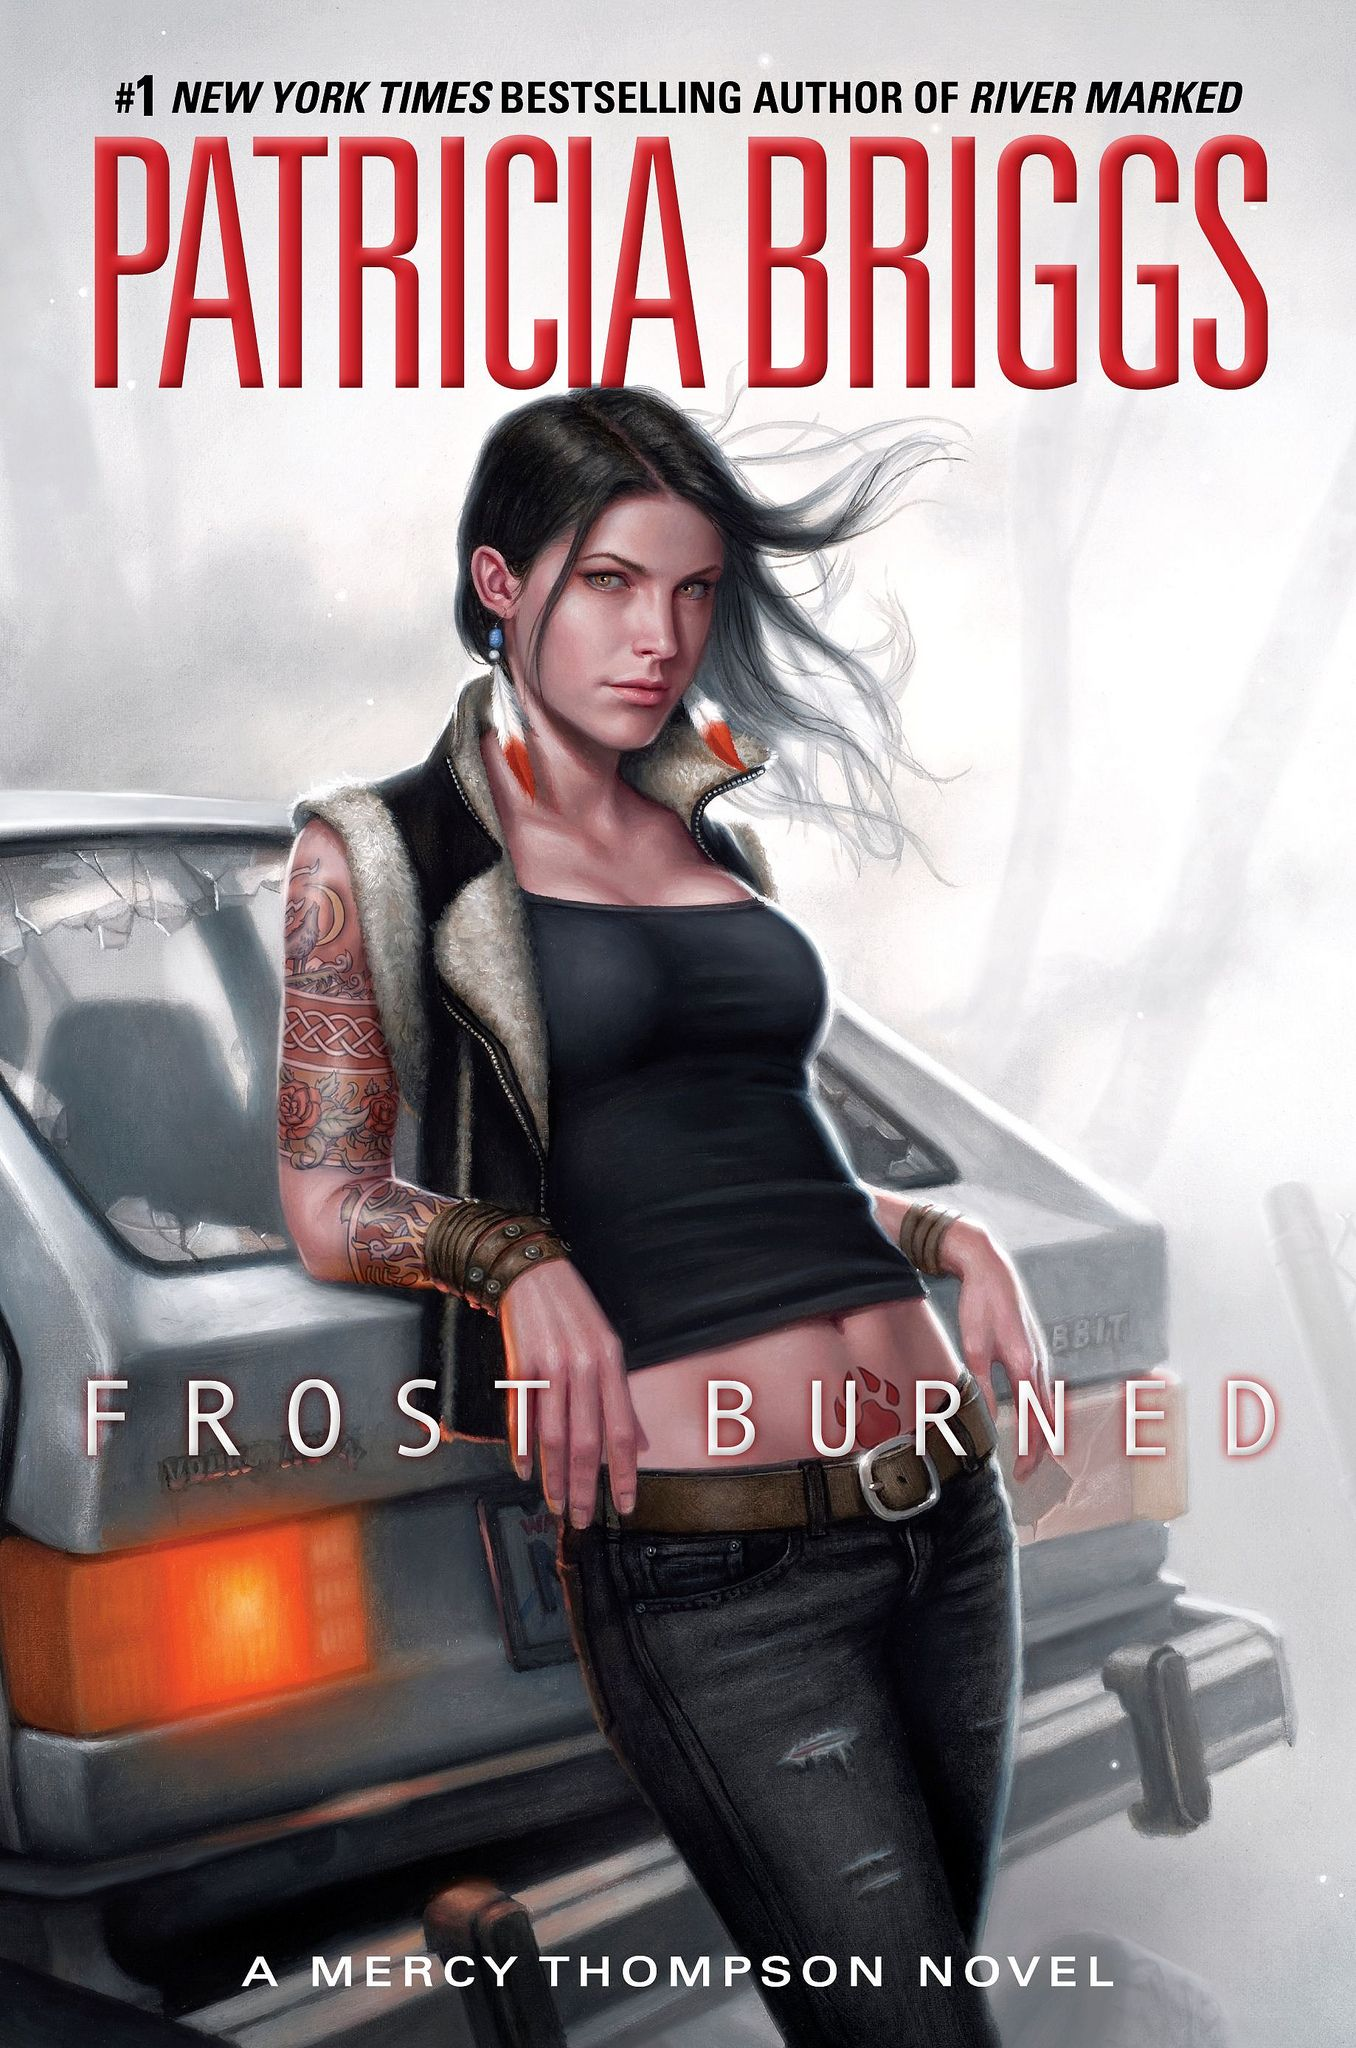 Review: FROST BURNED by Patricia Briggs | Book 7 of the Mercy Thompson series | rating: 4 out of 5 | http://www.cherrymischievous.com/2013/12/review-frost-burned.html